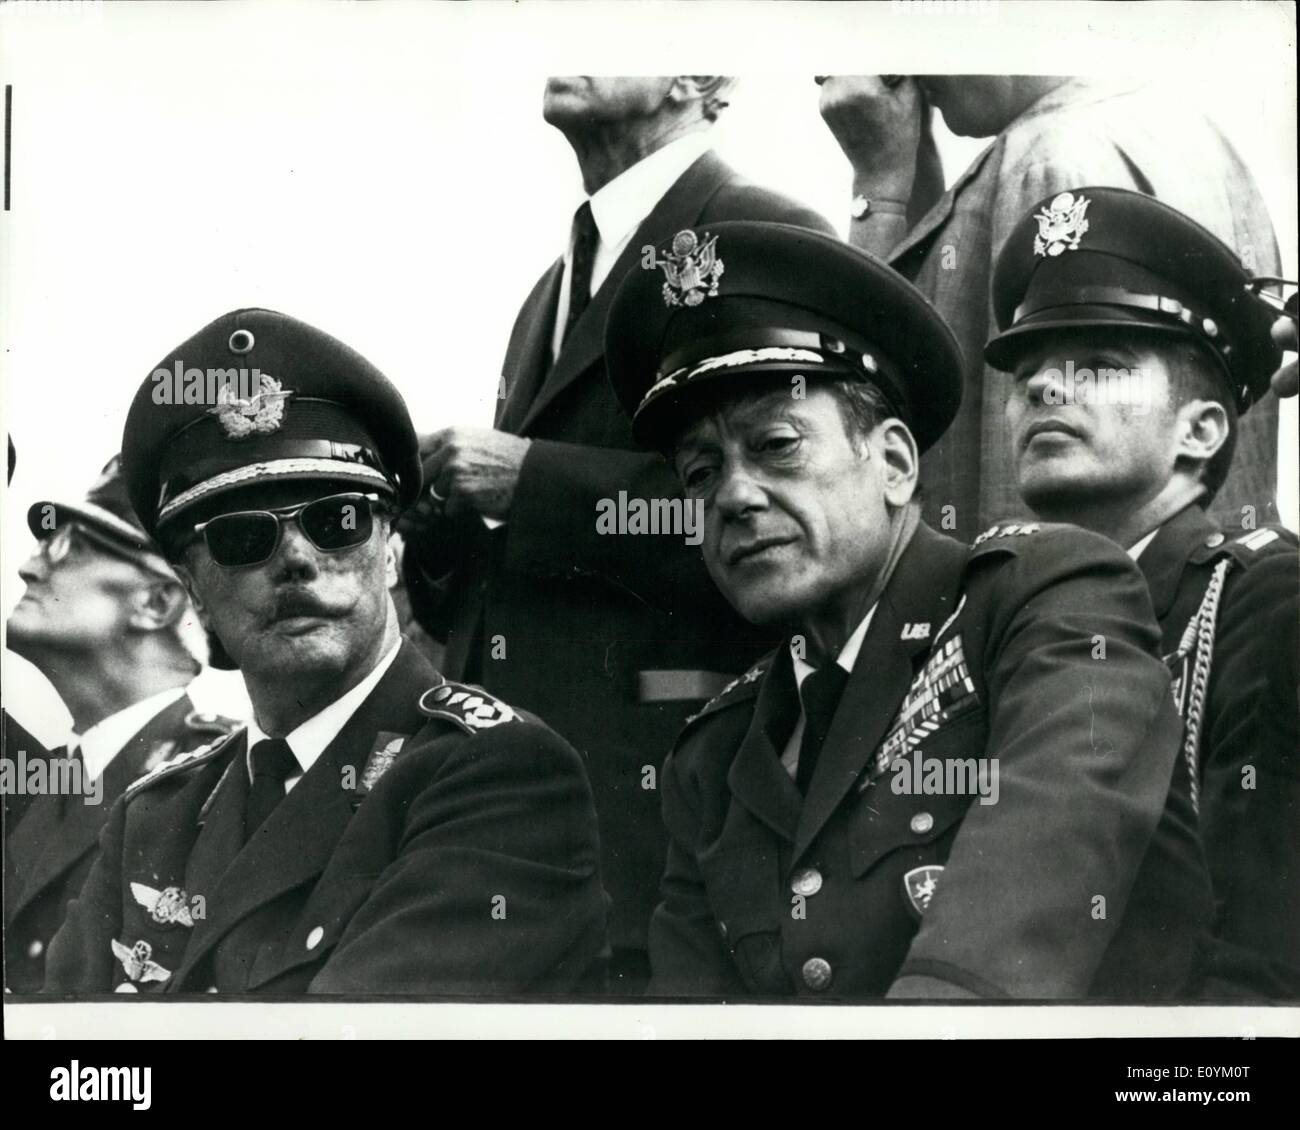 Sep. 09, 1970 - German-American Air Force Manoeuvre ''Black Sky'' : The German-American Air Force Manoeuvre ''Black-Sky'' was held in the South of the Federal Republic from the 7th - 10th September. Photo Show watching the manoeuvre are General Johannes Steinhoff (German Federal Republic) on left, and the American Four star General J.R. Holzapple. - Stock Image